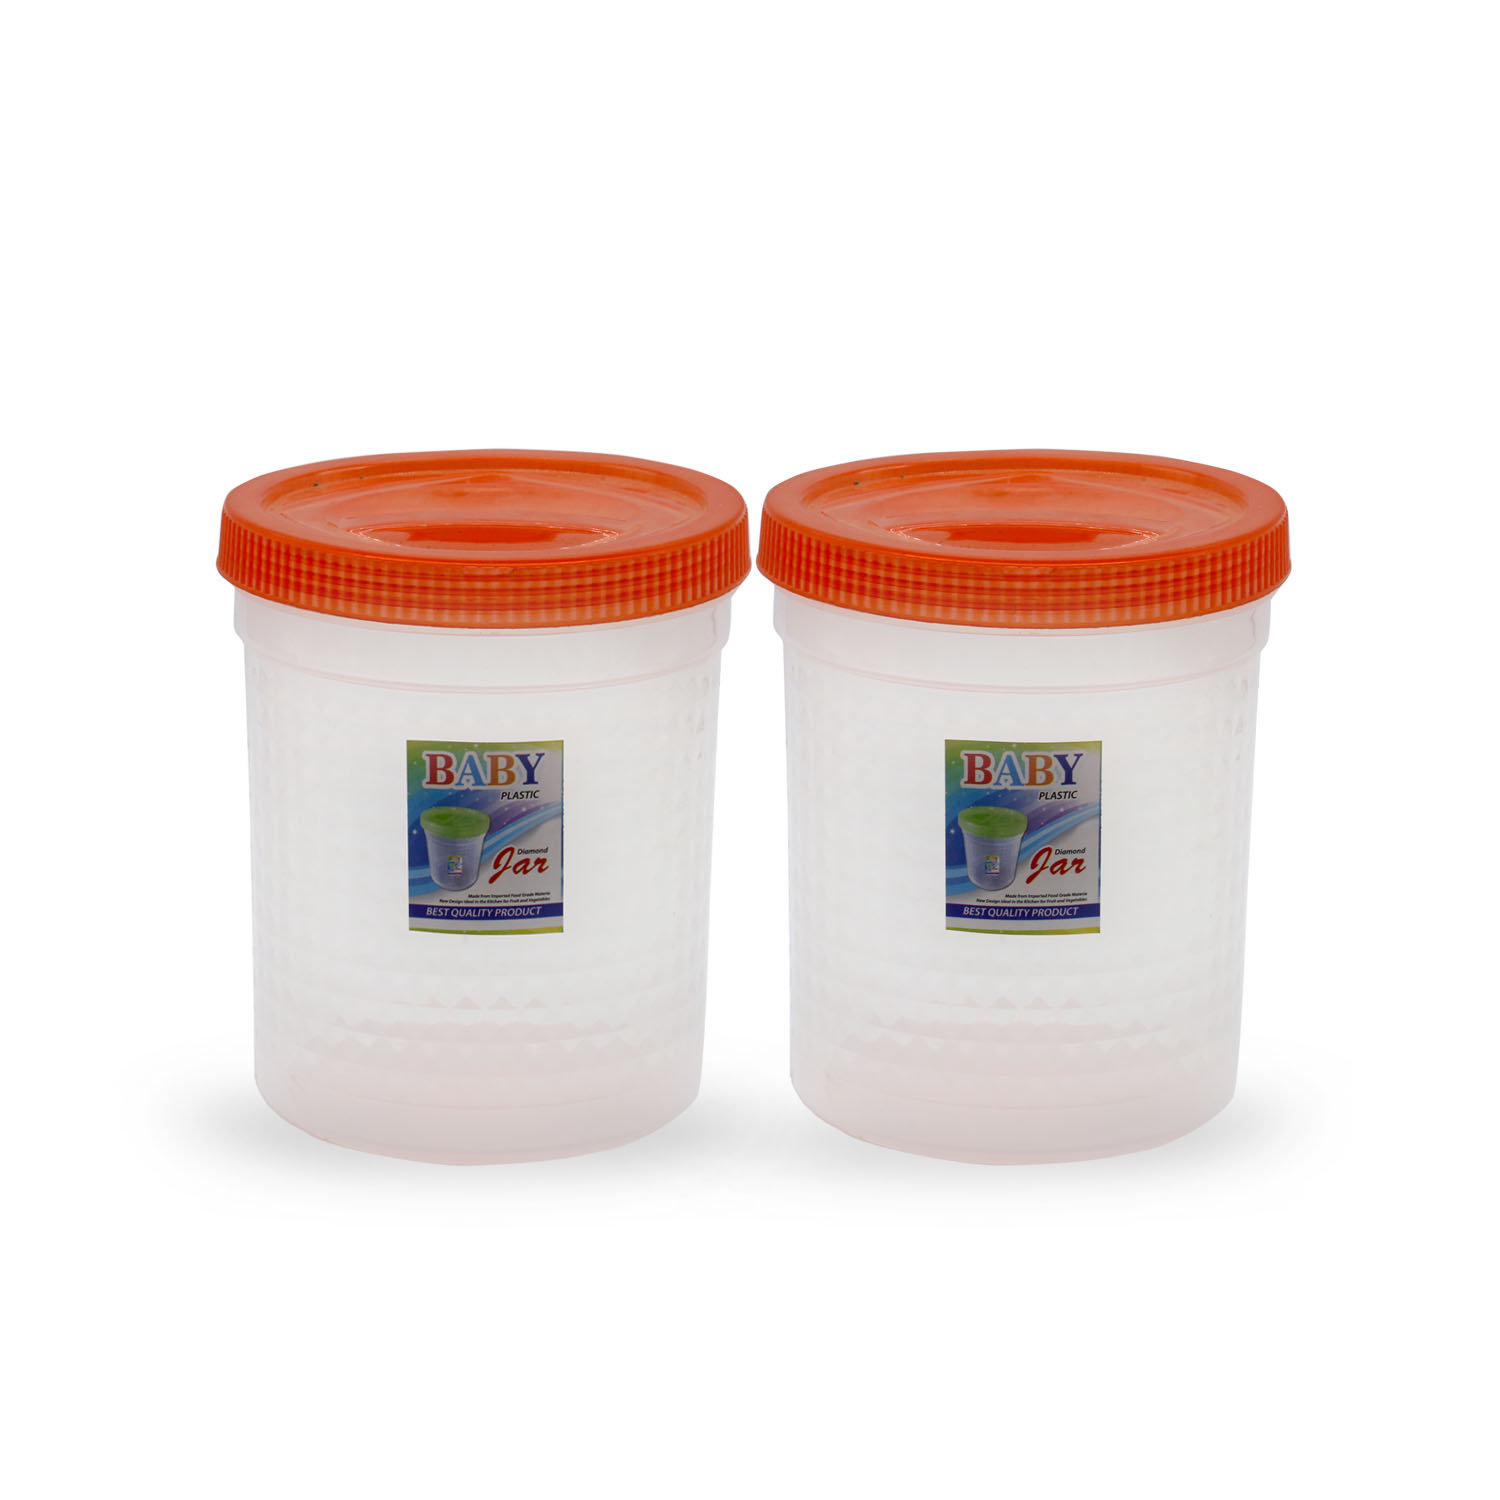 Novel Plastic Jar Set 2pcs Orange